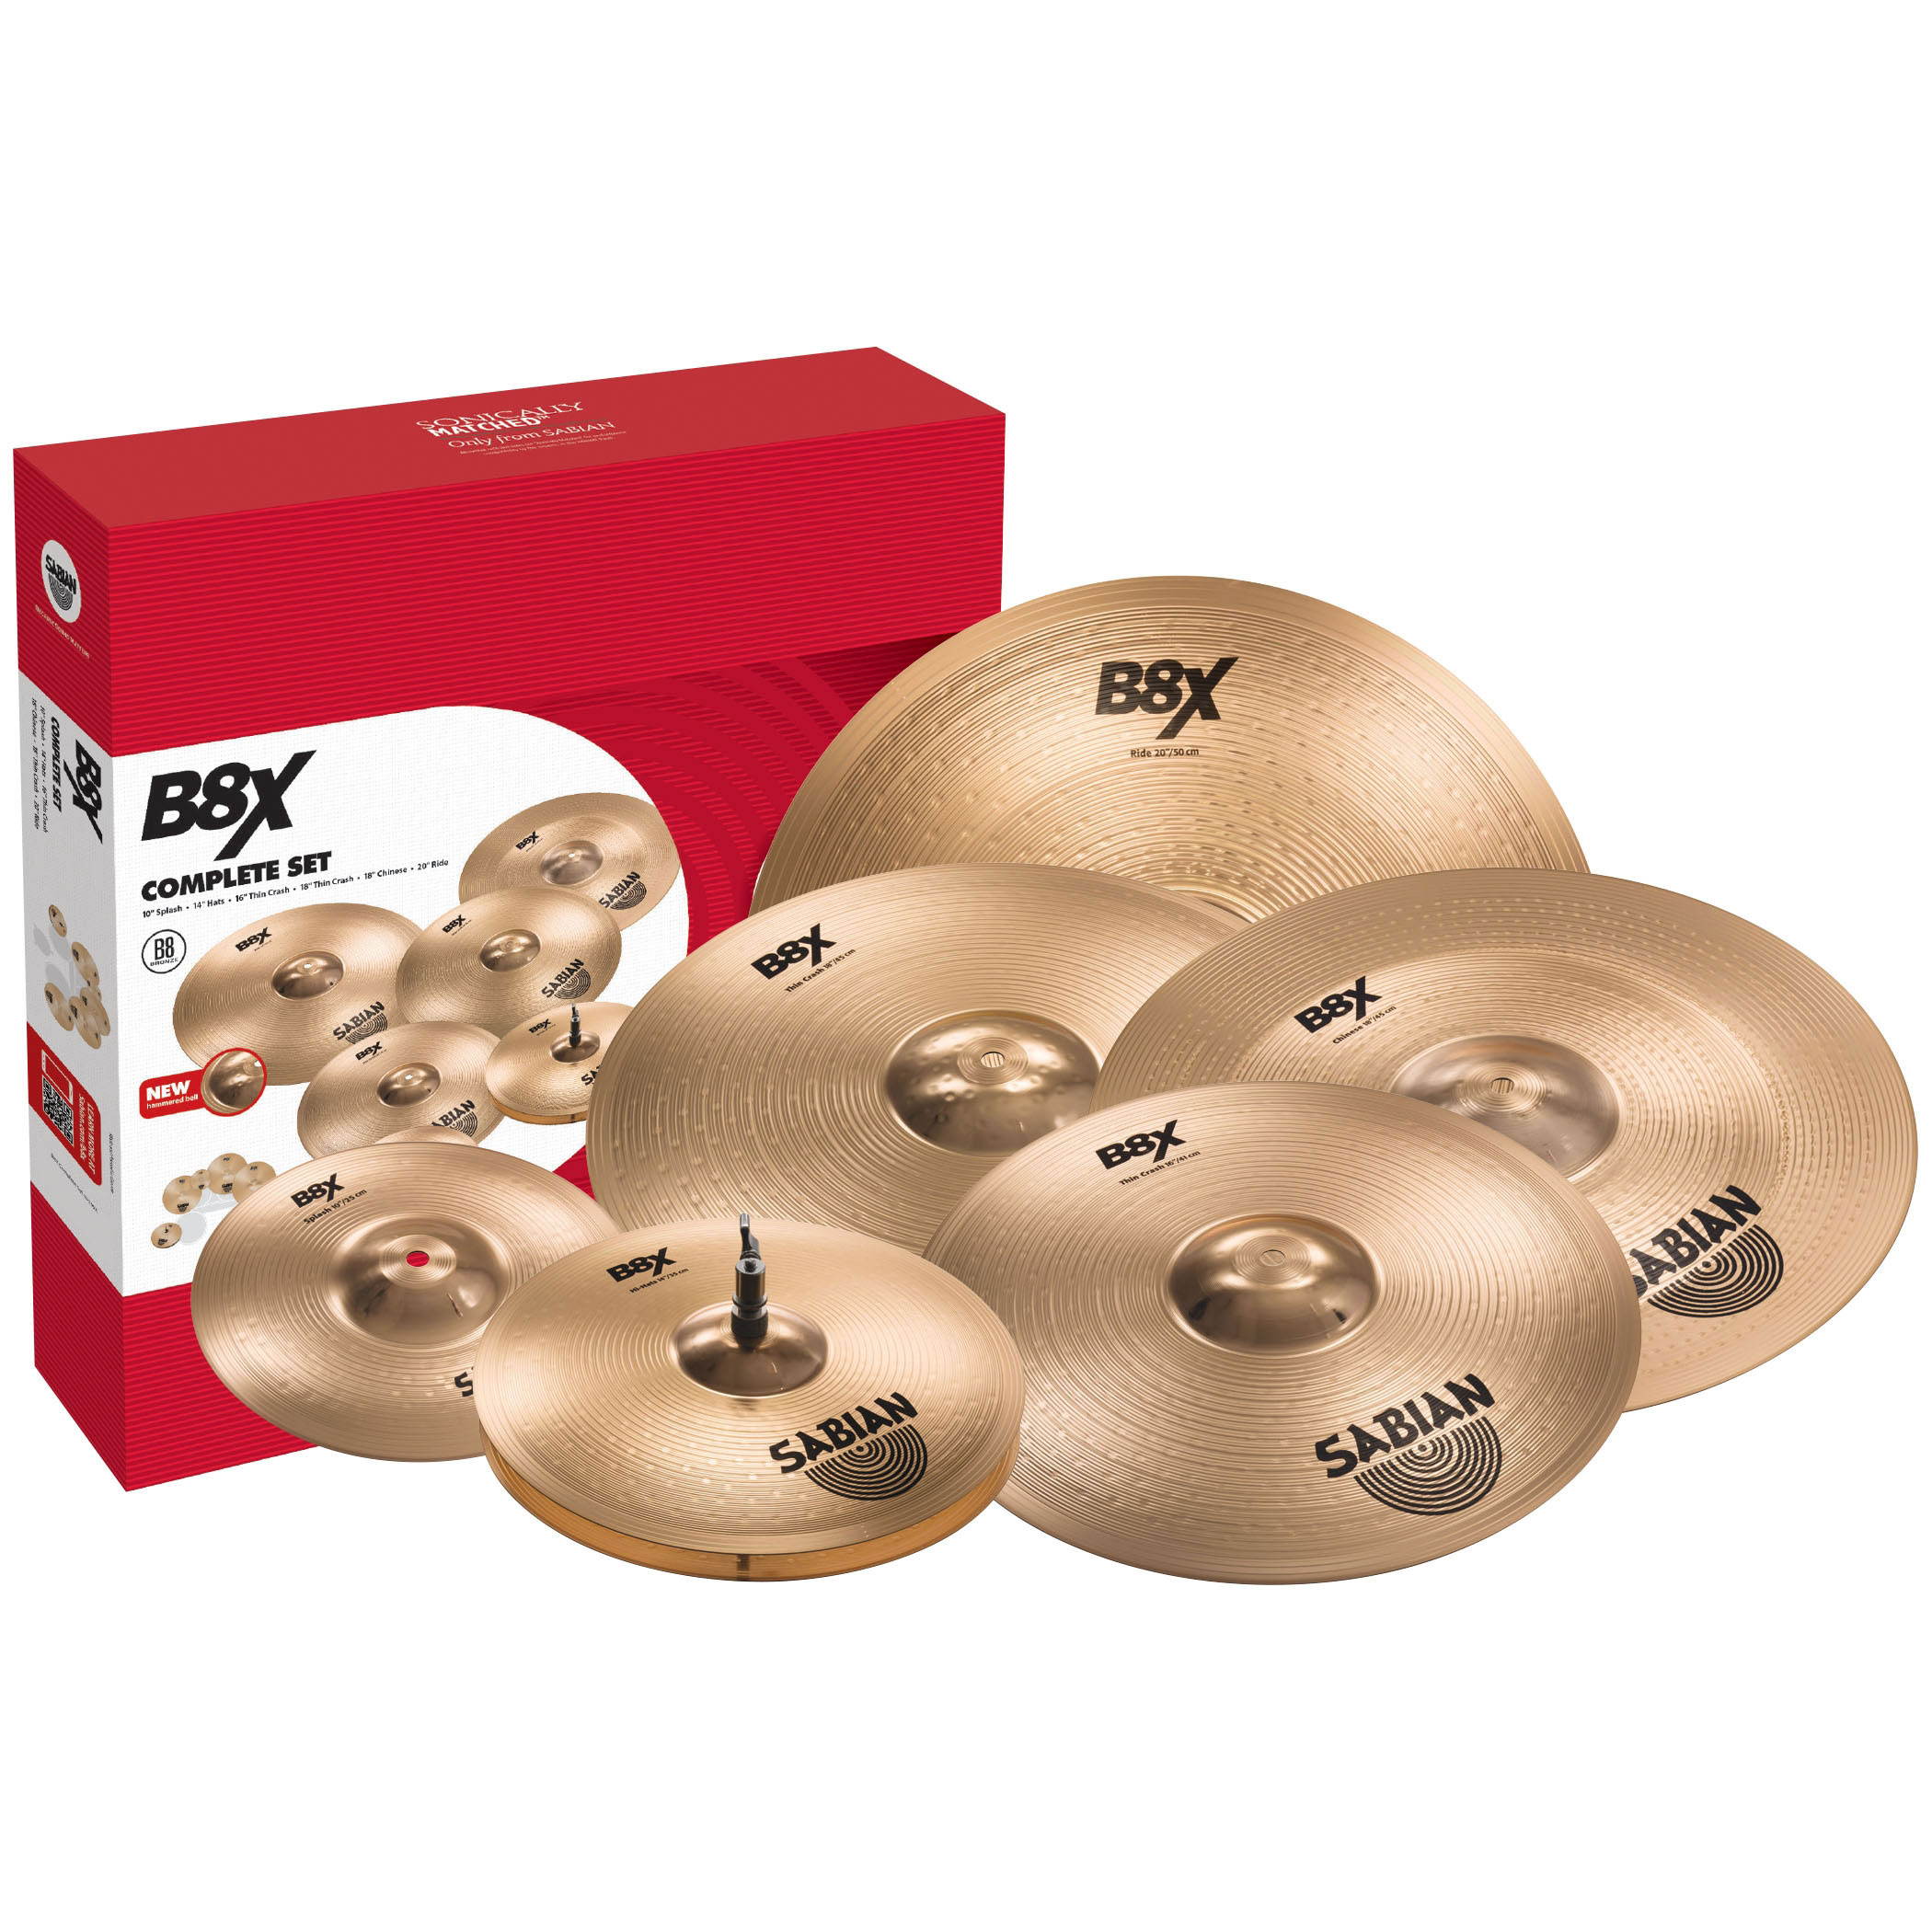 Sabian B8X Complete 6-Piece Cymbal Box Set (Hi Hats, 2 Crashes, Ride, Splash, China)